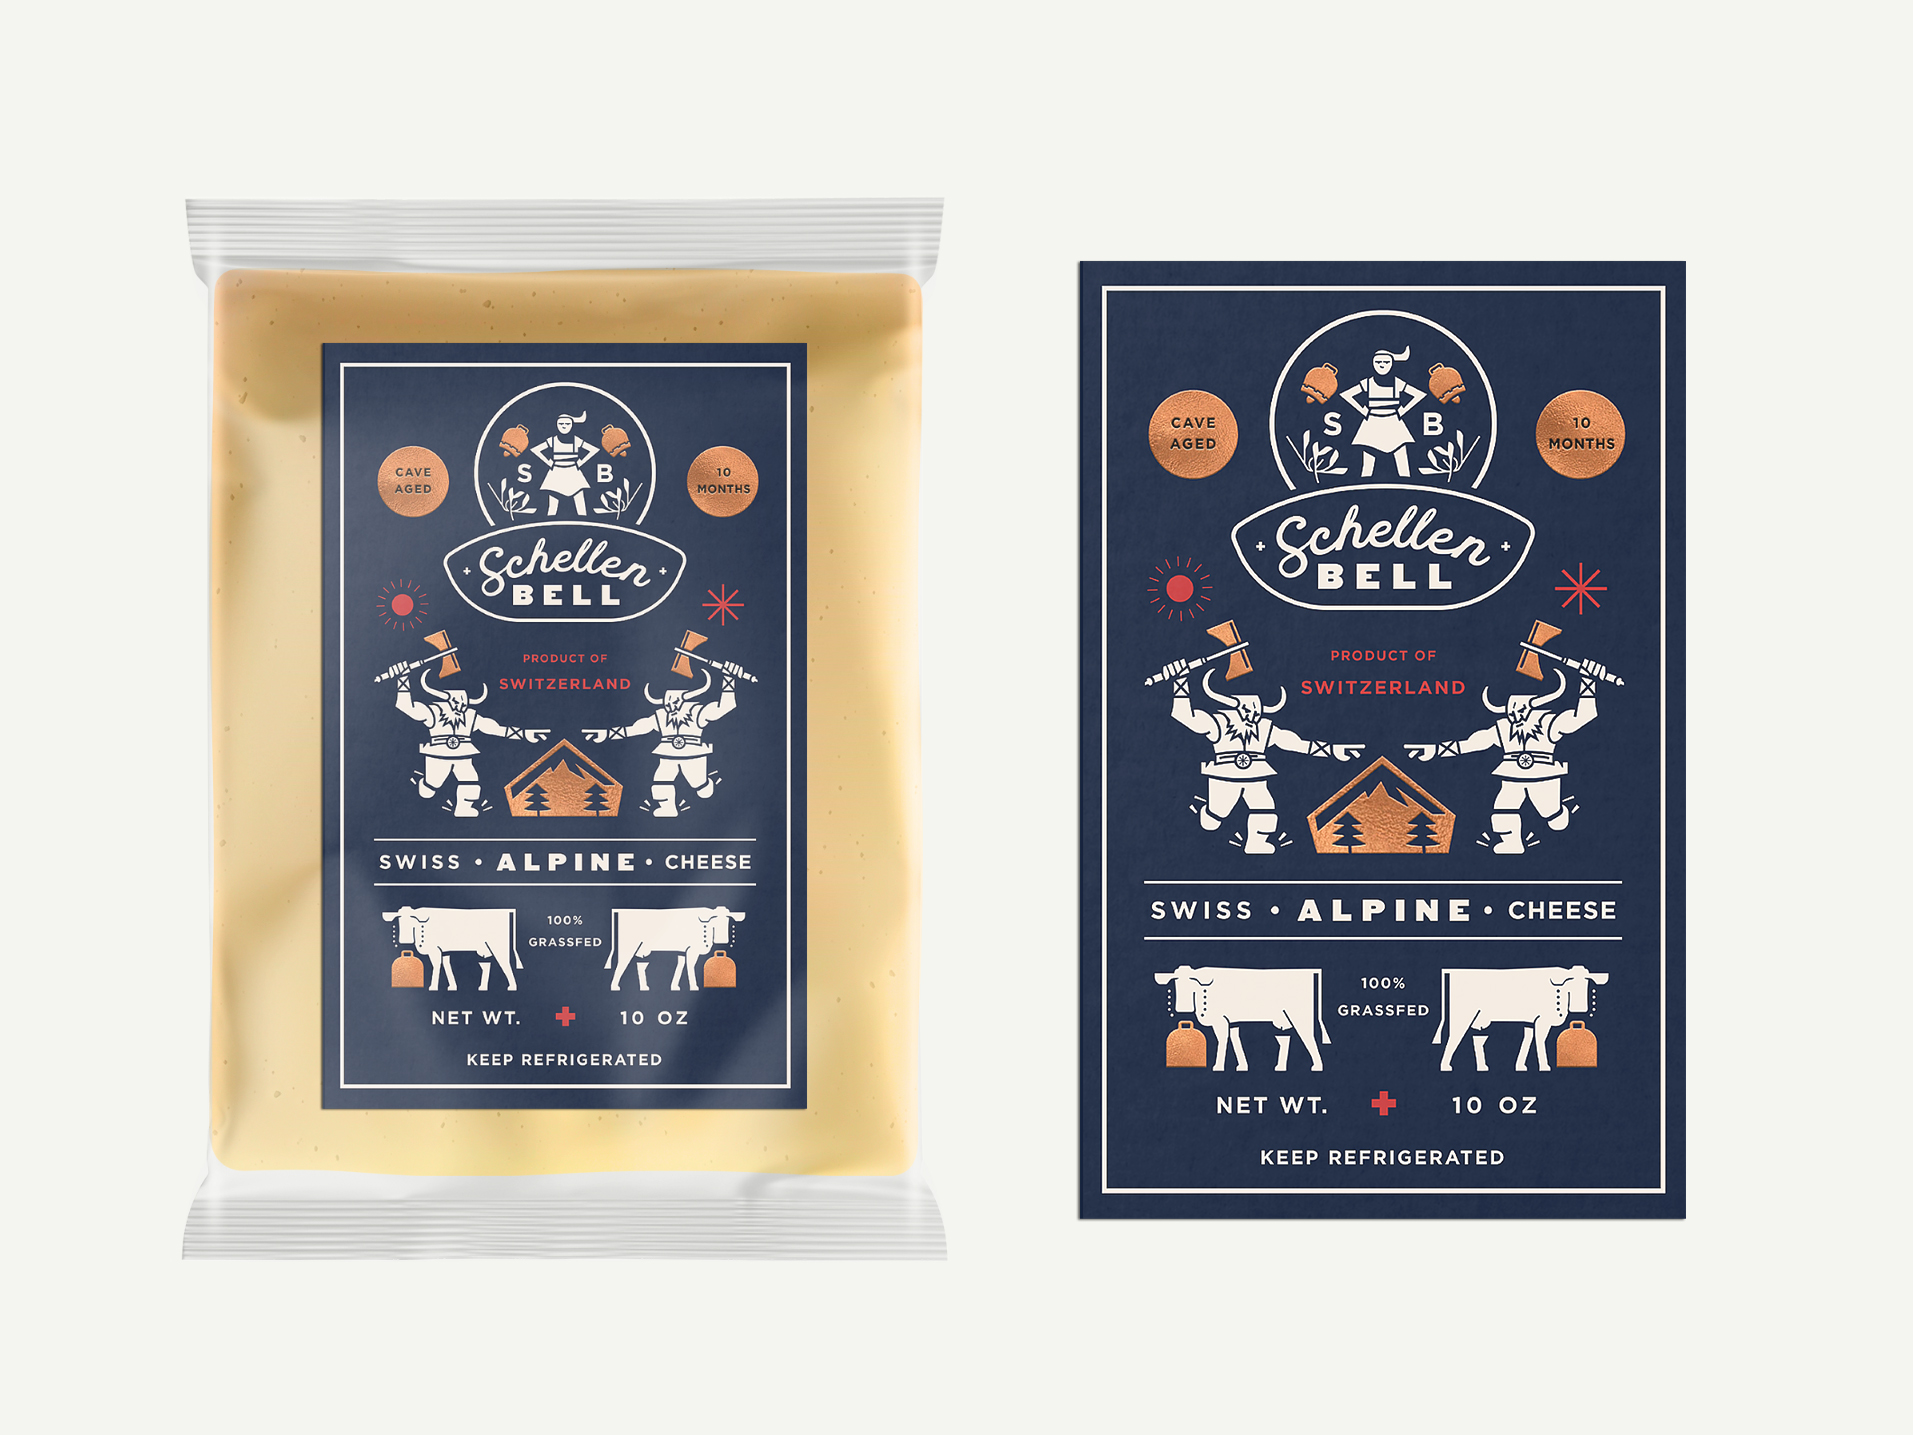 repack-market-label-logo-design-cheese-zeki-michael-atlanta-new-york-cheese-swiss-alpine-studio-design-branding copy copy.jpg